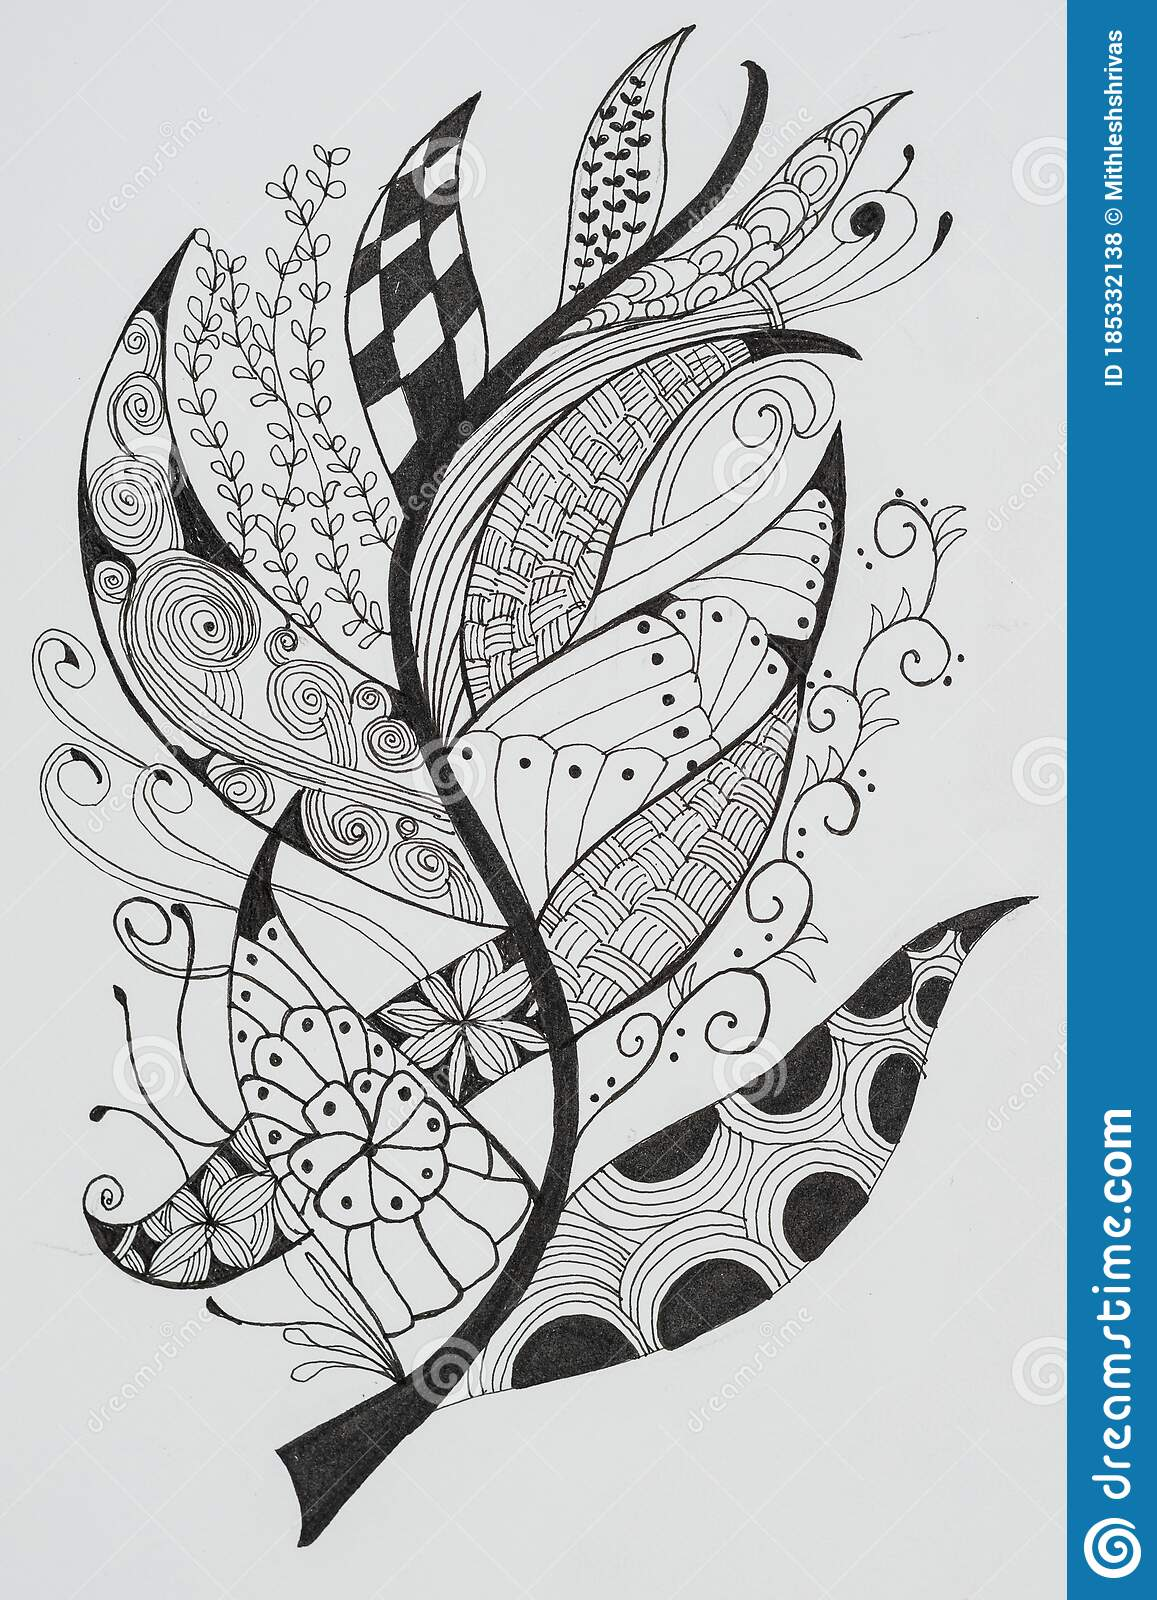 Hand Drawing Artistic Abstract Art For Adult Coloring Pages In Doodle Stock Illustration Illustration Of Monochrome Hobby 185332138